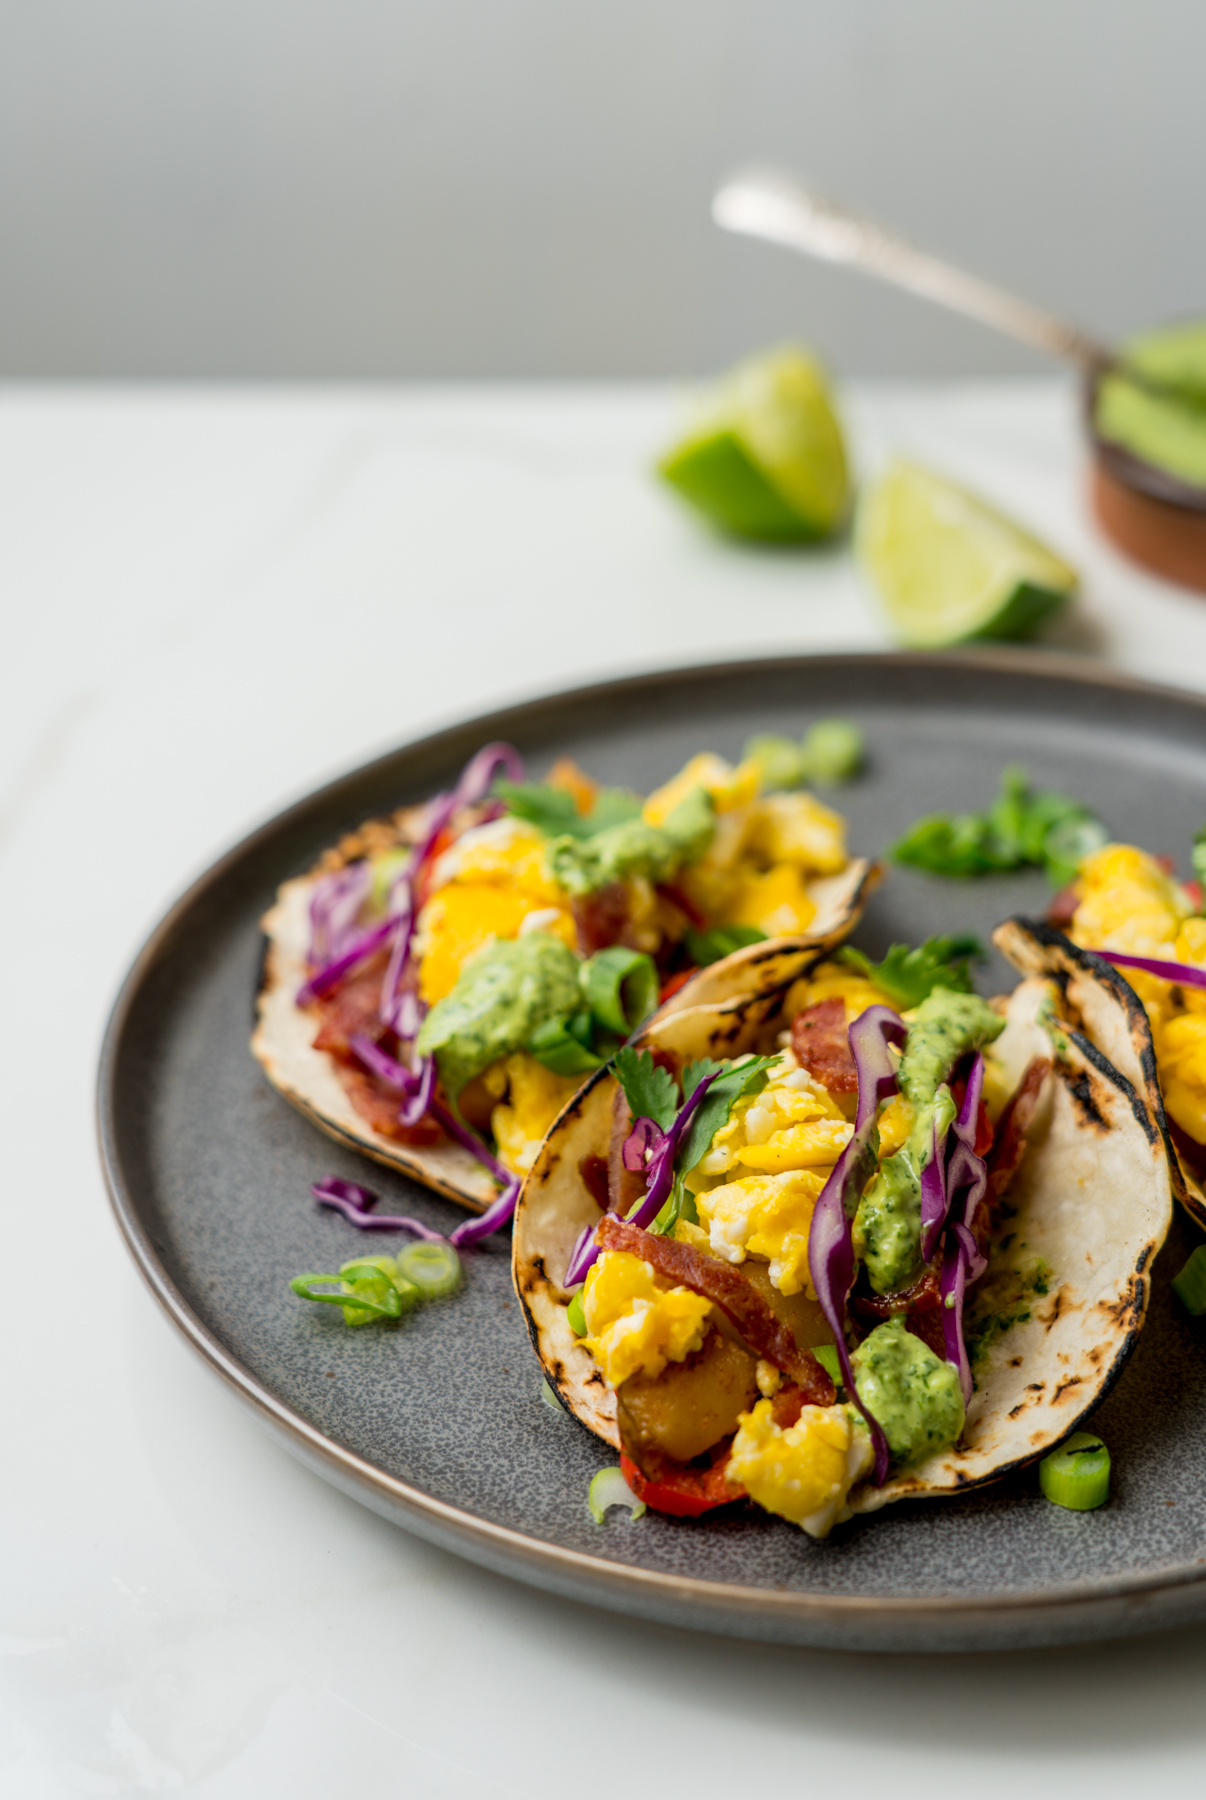 Easy Peasy Breakfast Tacos, recipe by Brunchographers